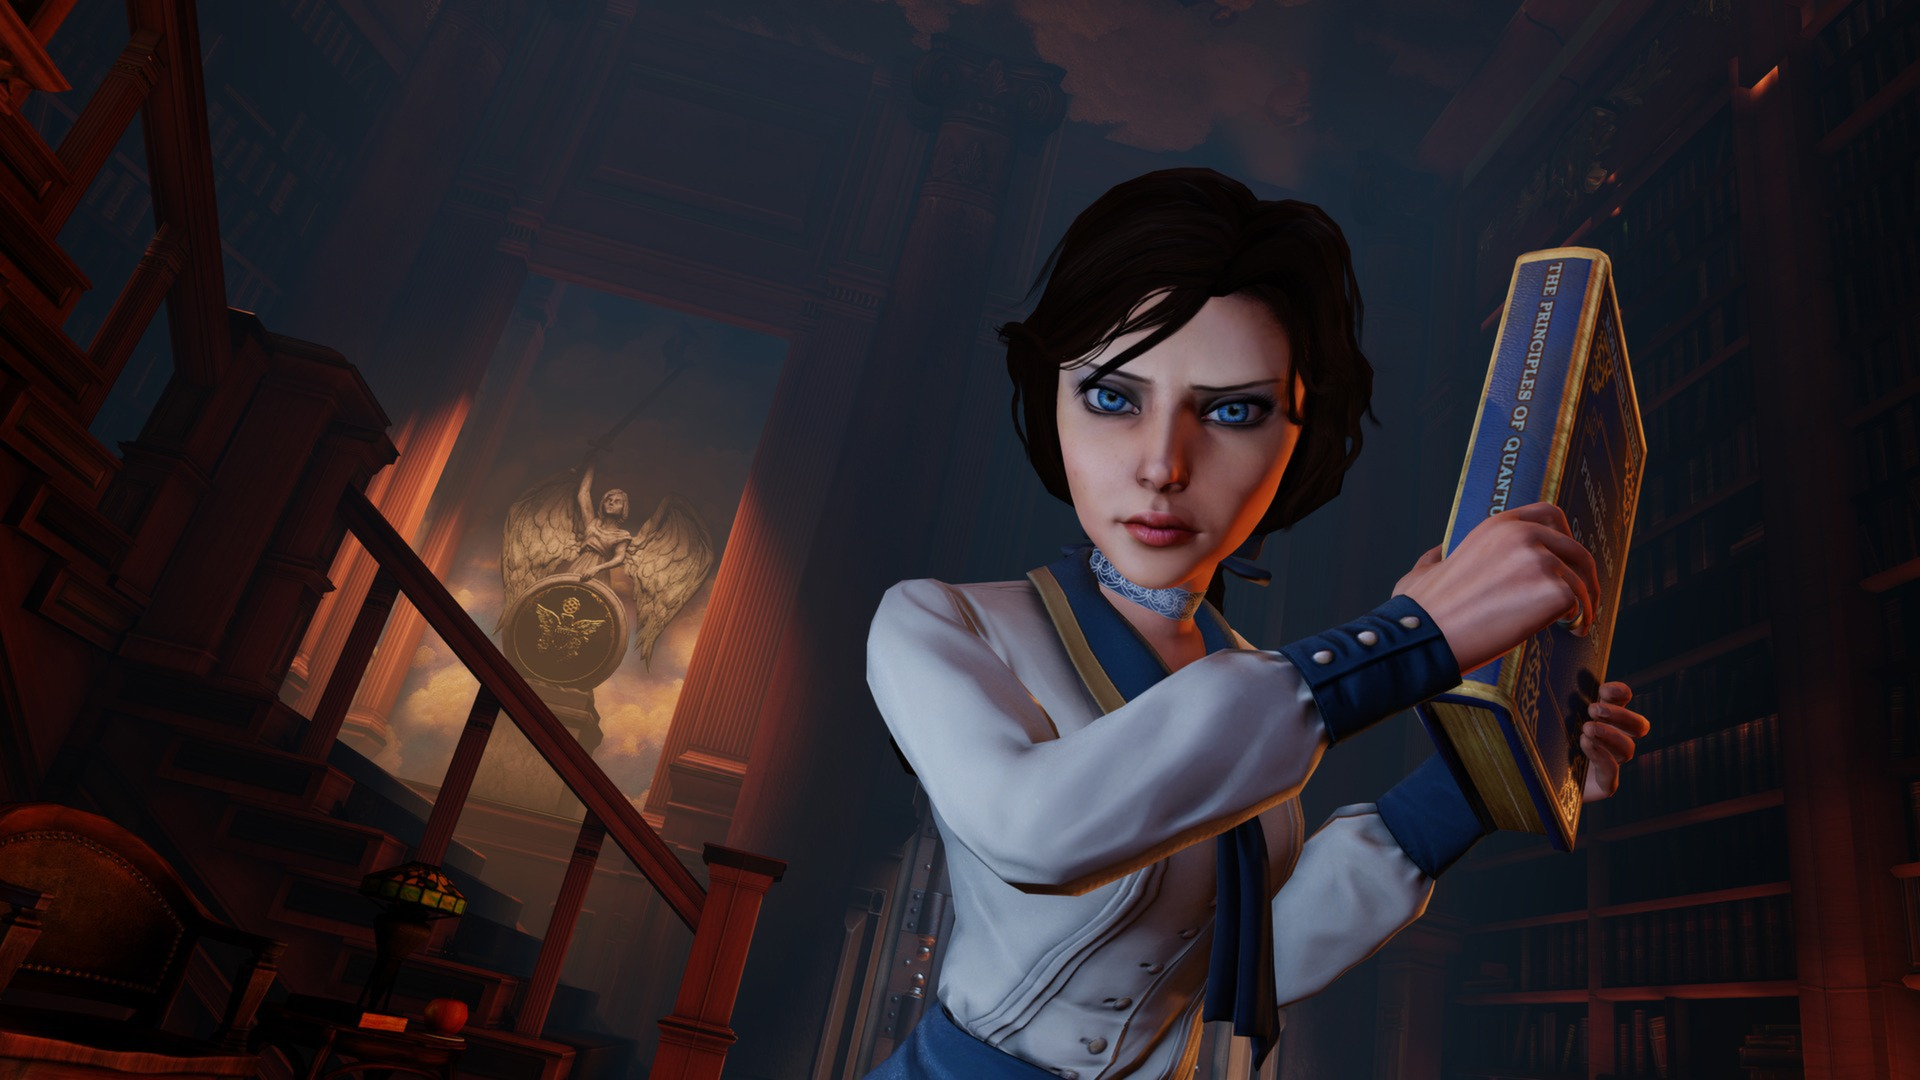 BioShock Infinite (Rent from 14 days) + Playkey